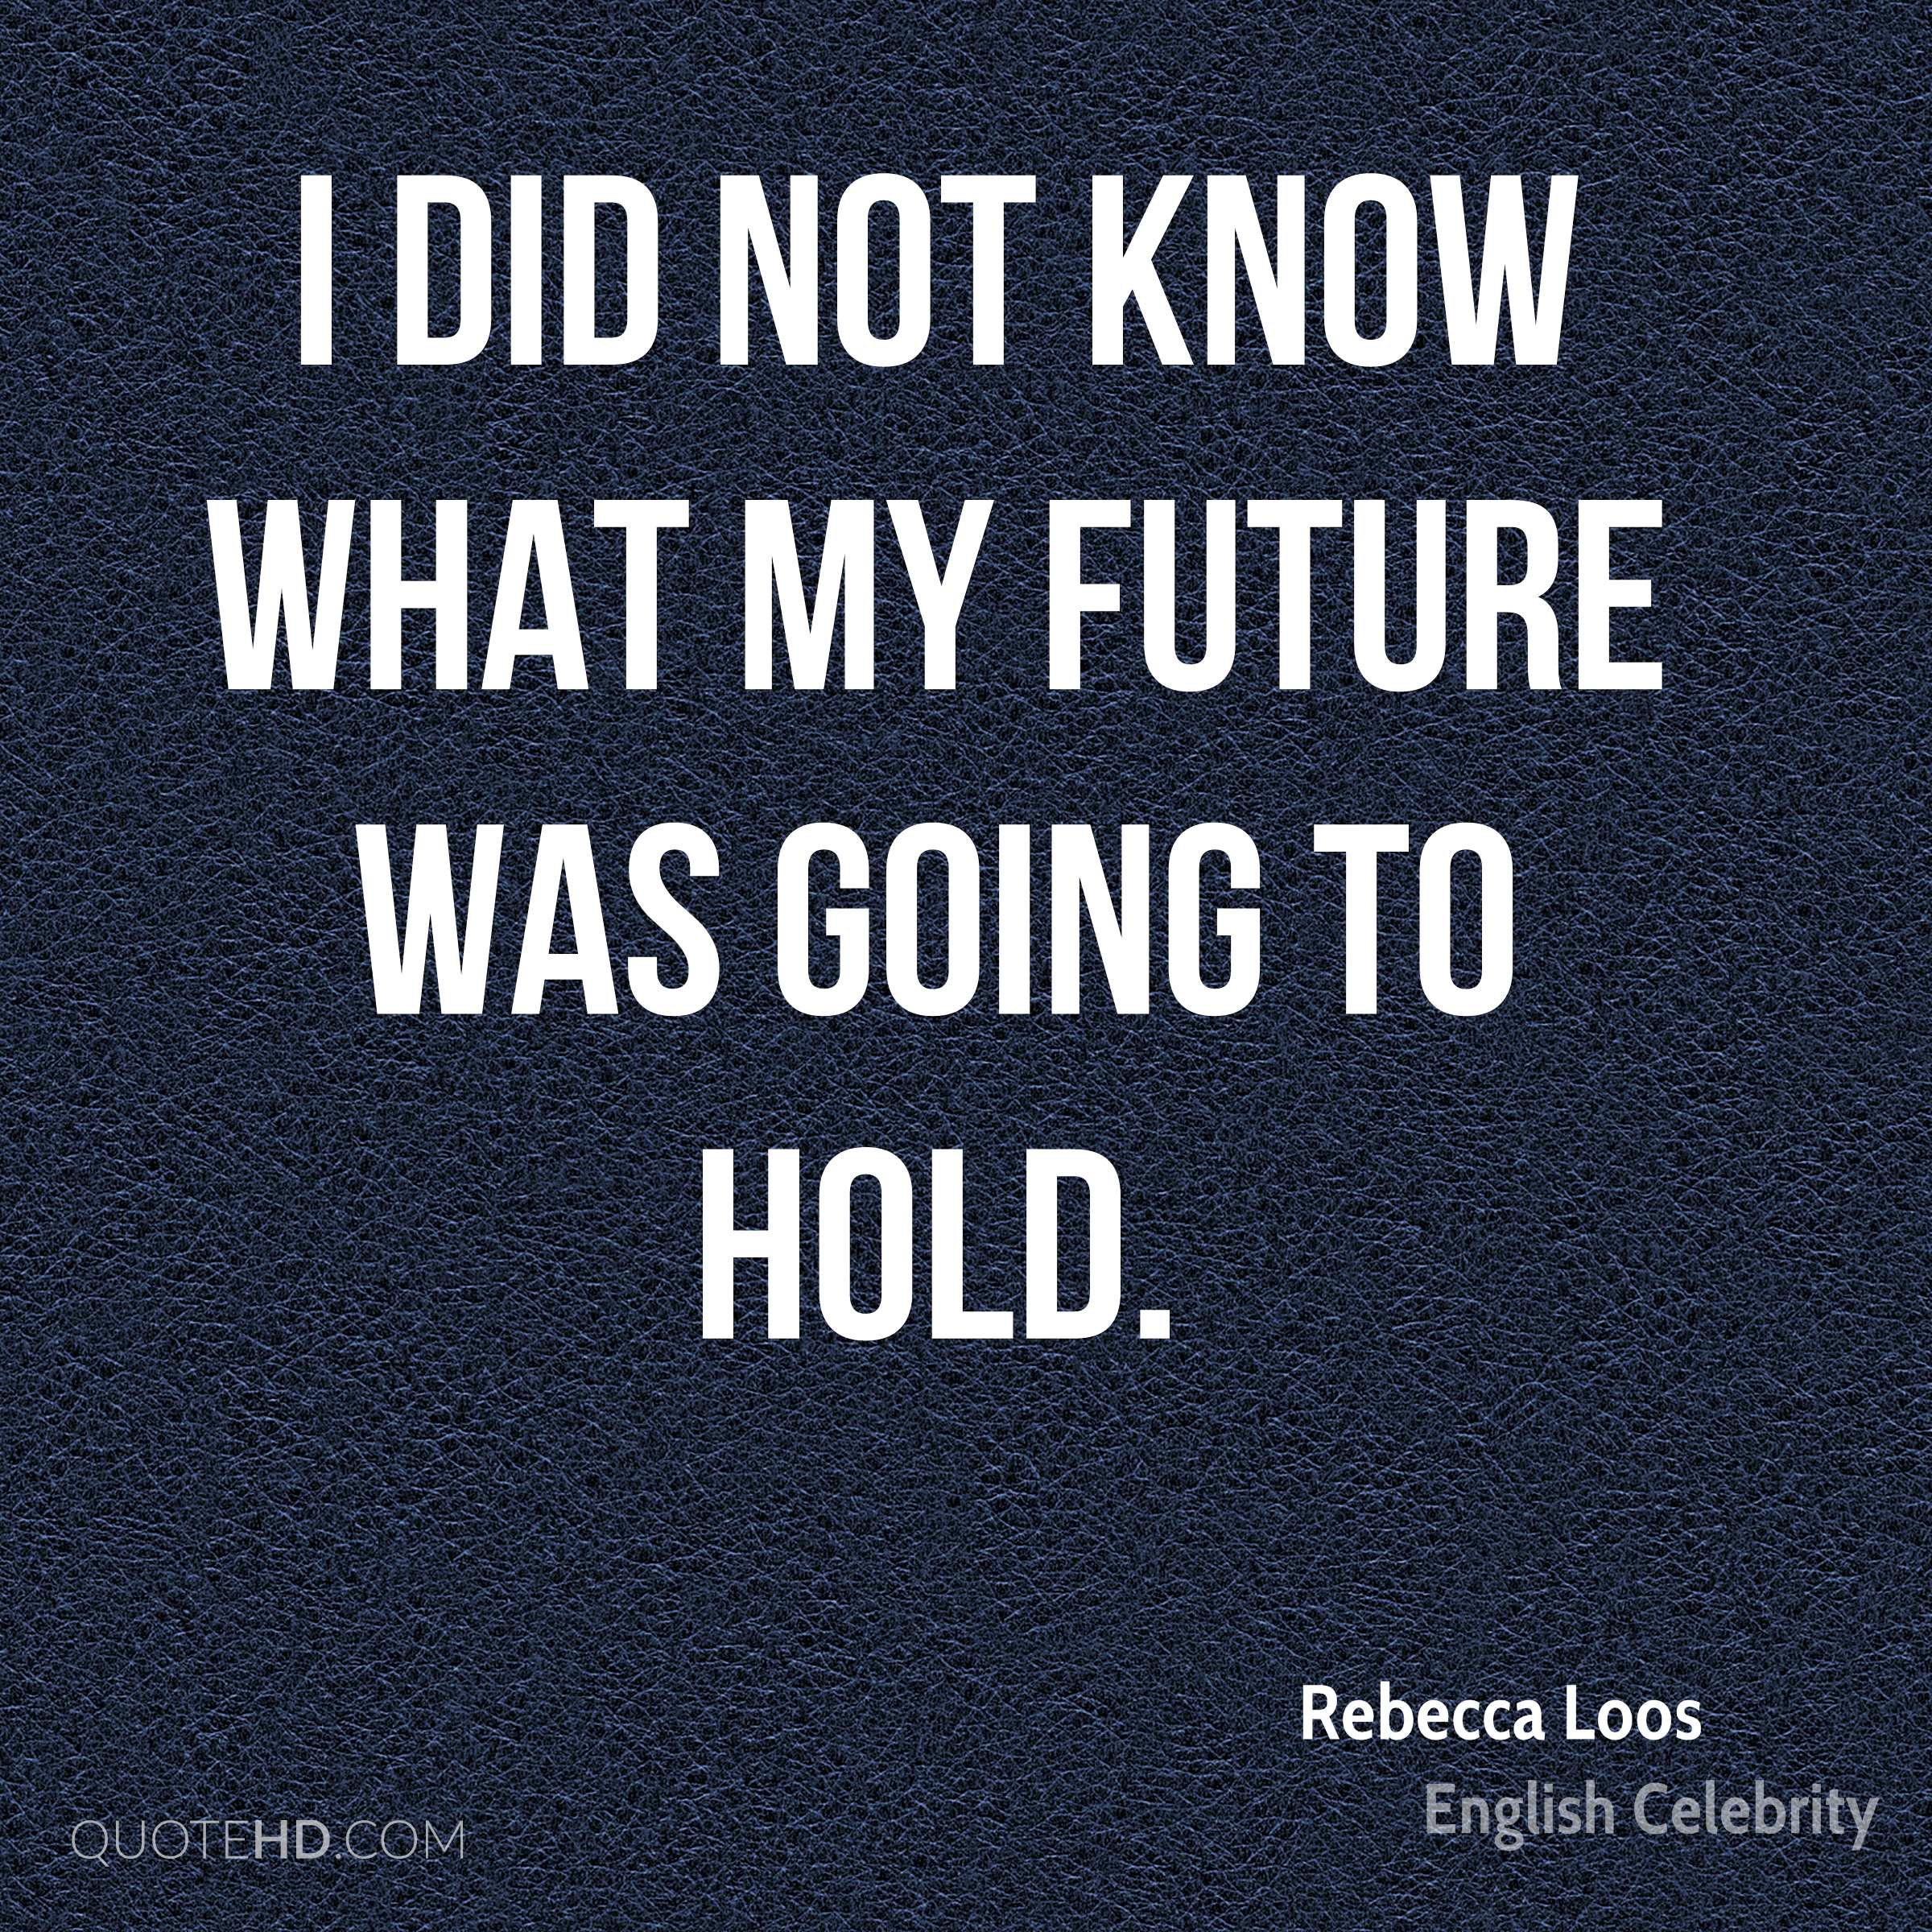 I did not know what my future was going to hold.